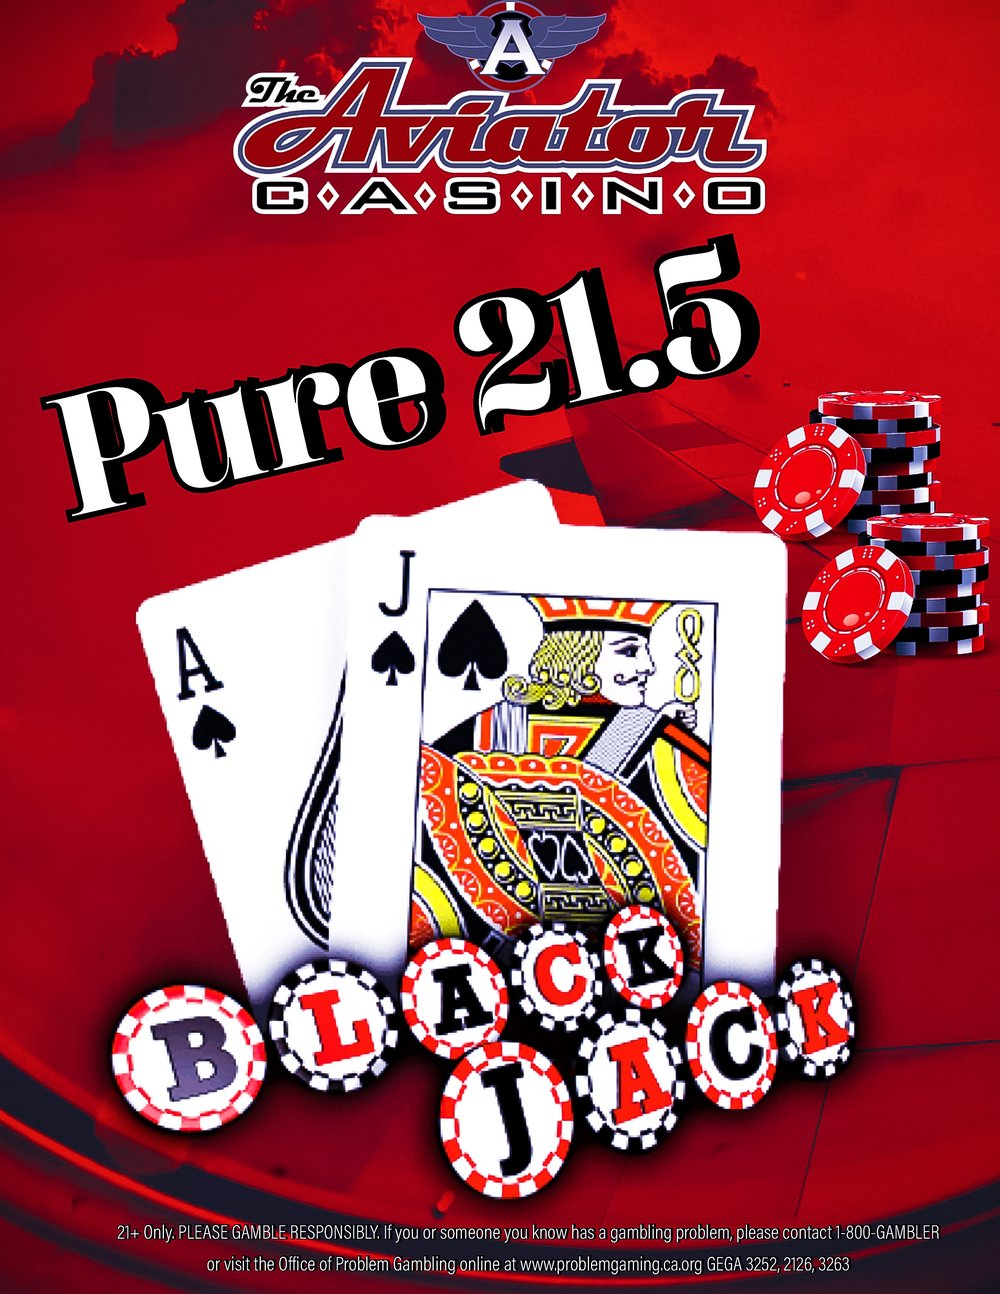 Pure 21.5 Blackjack w/ Red Flex & Buster Bet - We offer Pure 21.5 Blackjack! Enjoy the game the way it was meant to be playedGEGA 3252, 2126, 3263